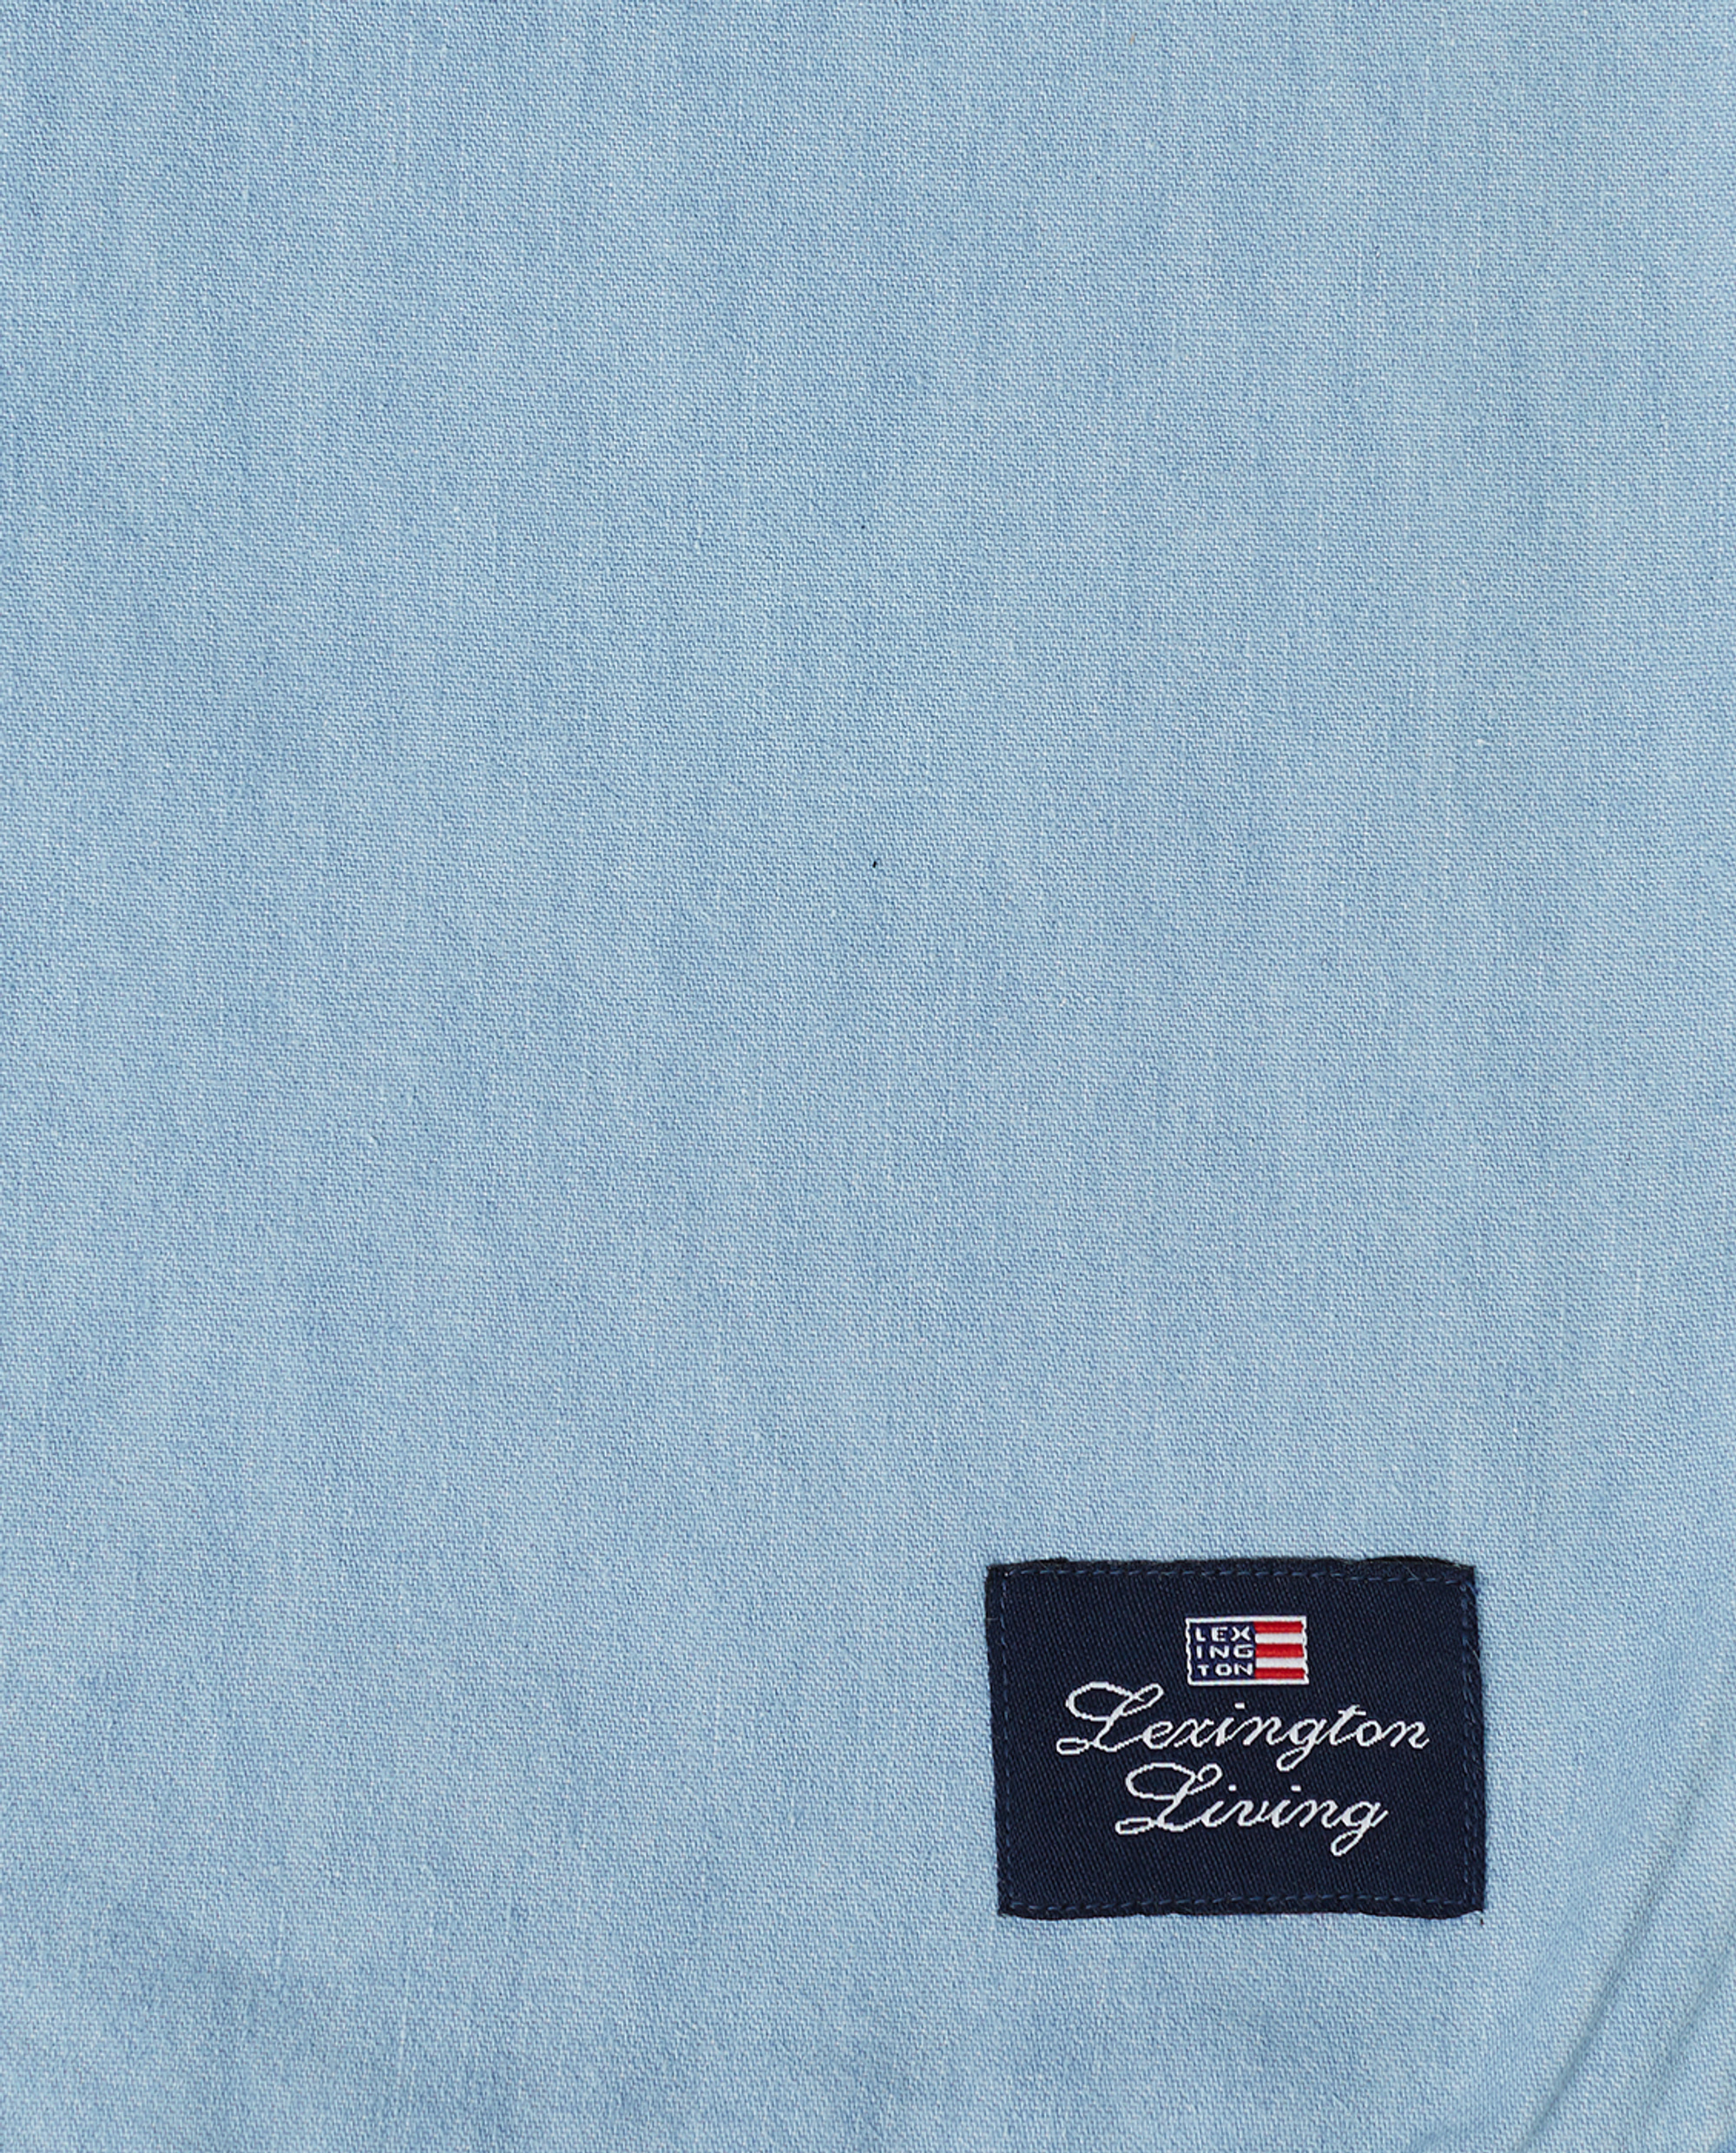 Light Blue Denim Washed Cotton Tablecloth